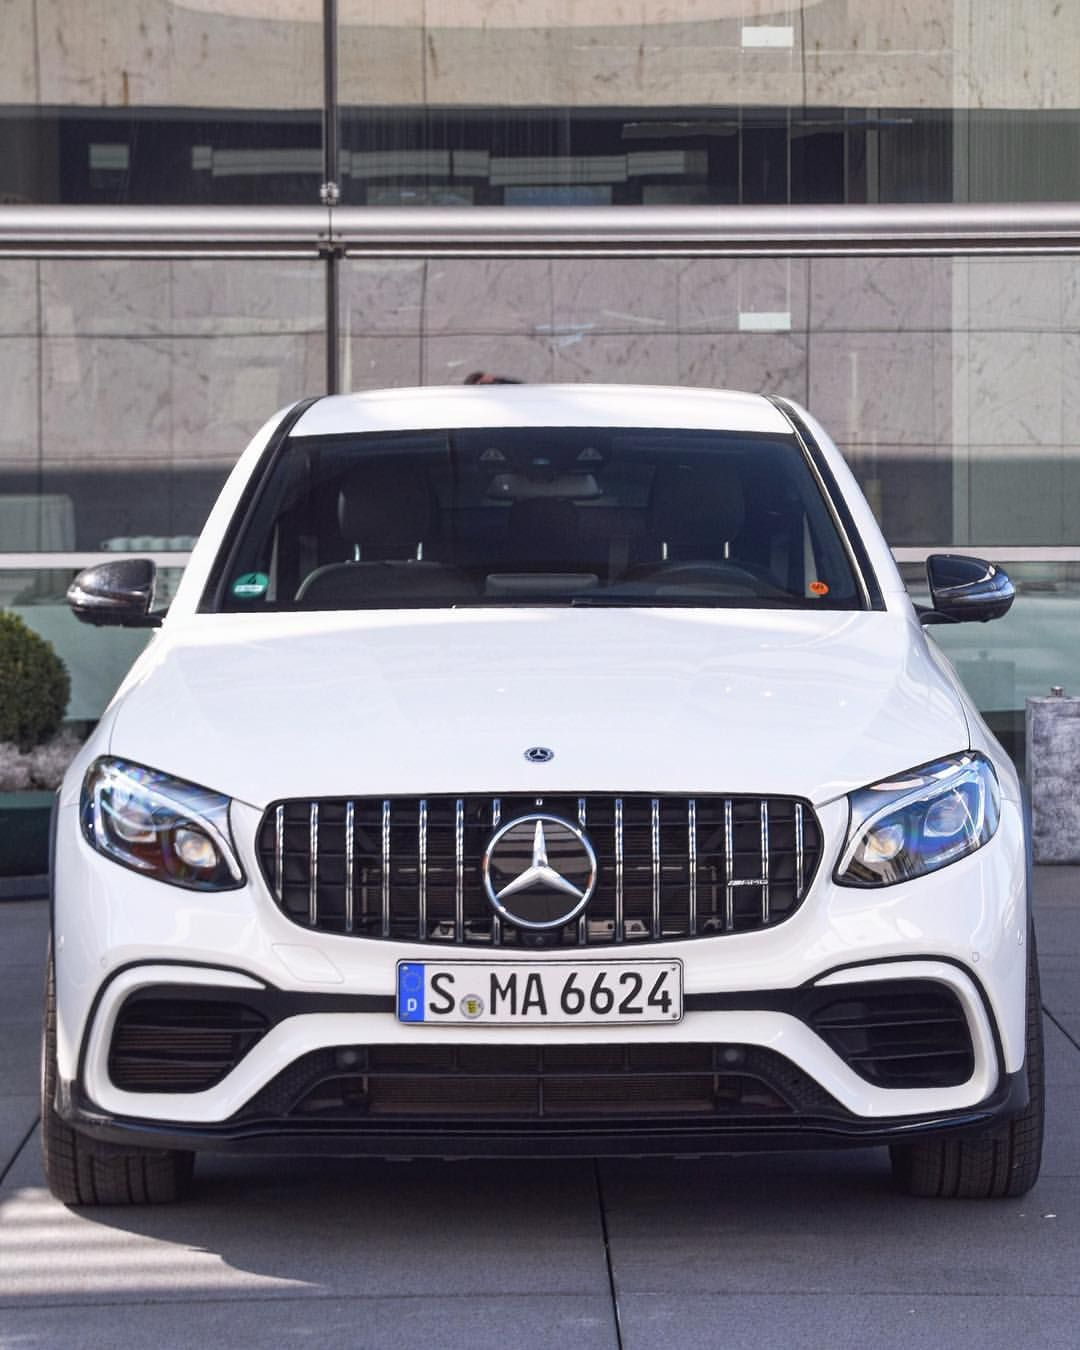 Mercedes Amg Glc 63s 4matic Coupe Robin K94 On Instagram